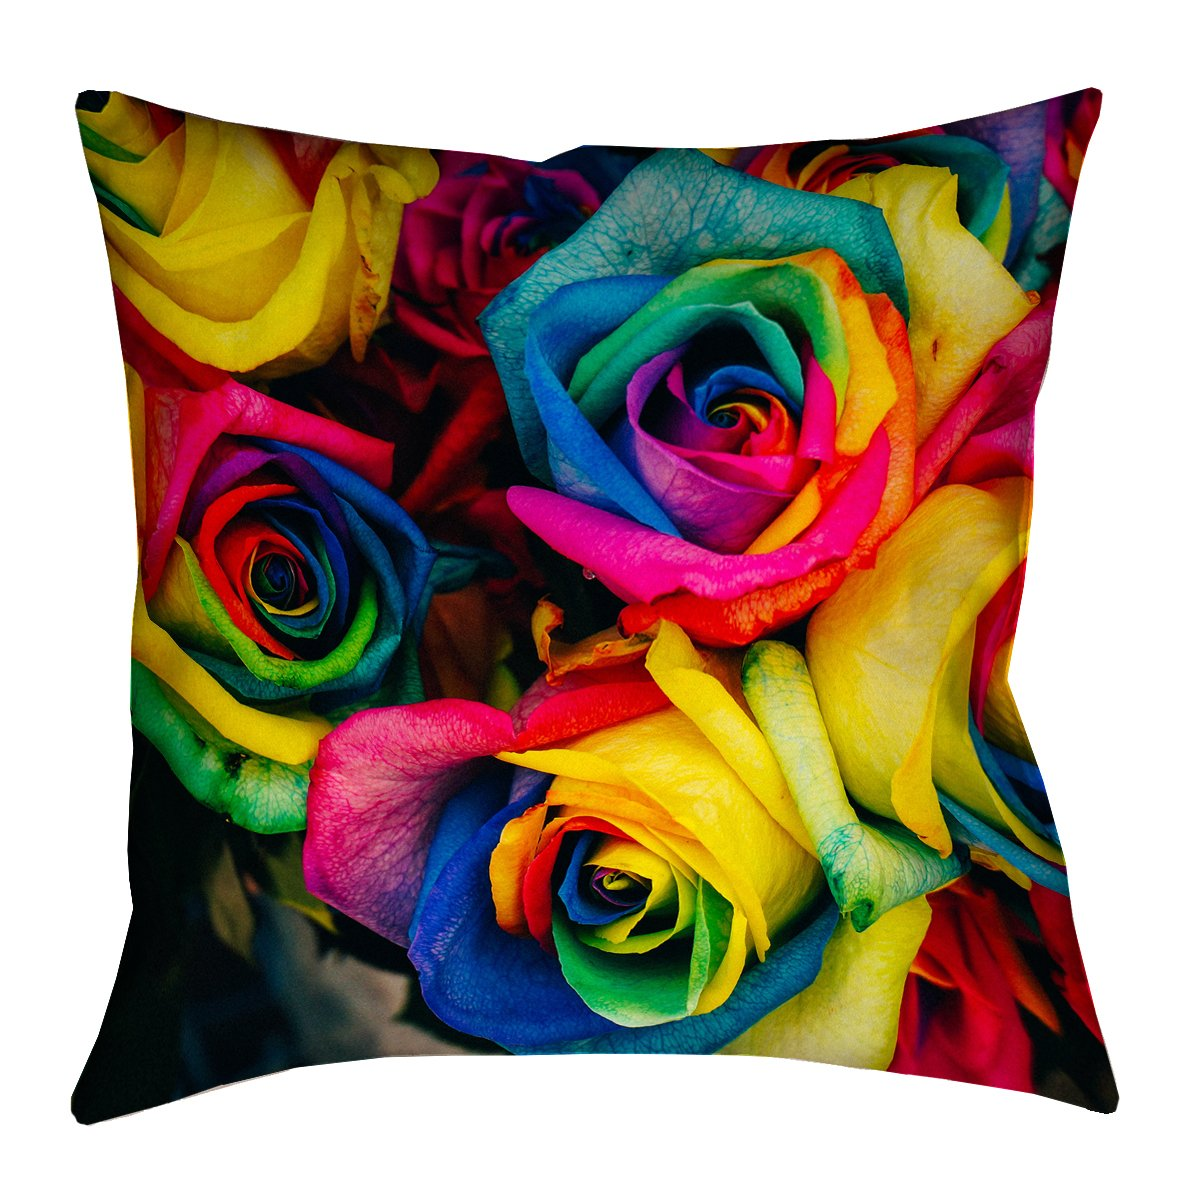 ArtVerse Denise Chan 14\' x 14\' Faux Suede Double Sided Print with Concealed Zipper & Insert Rainbow Roses Pillow